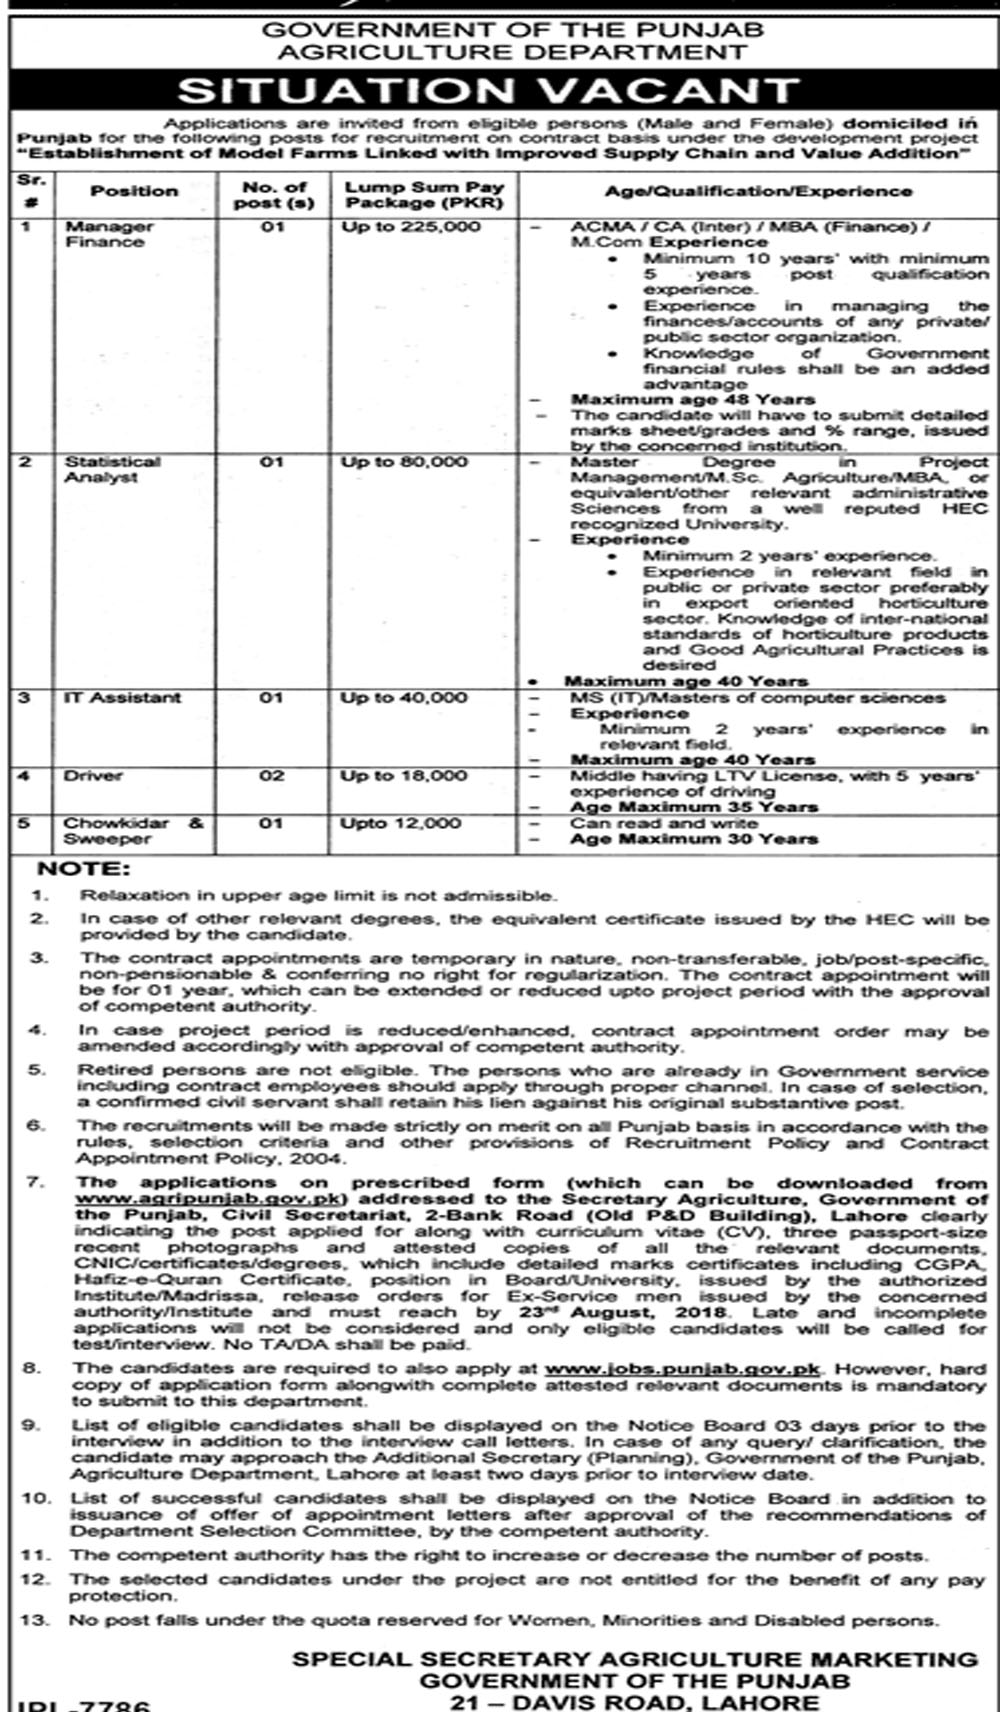 Job in government of the punjab agriculture department 2 Aug 2018